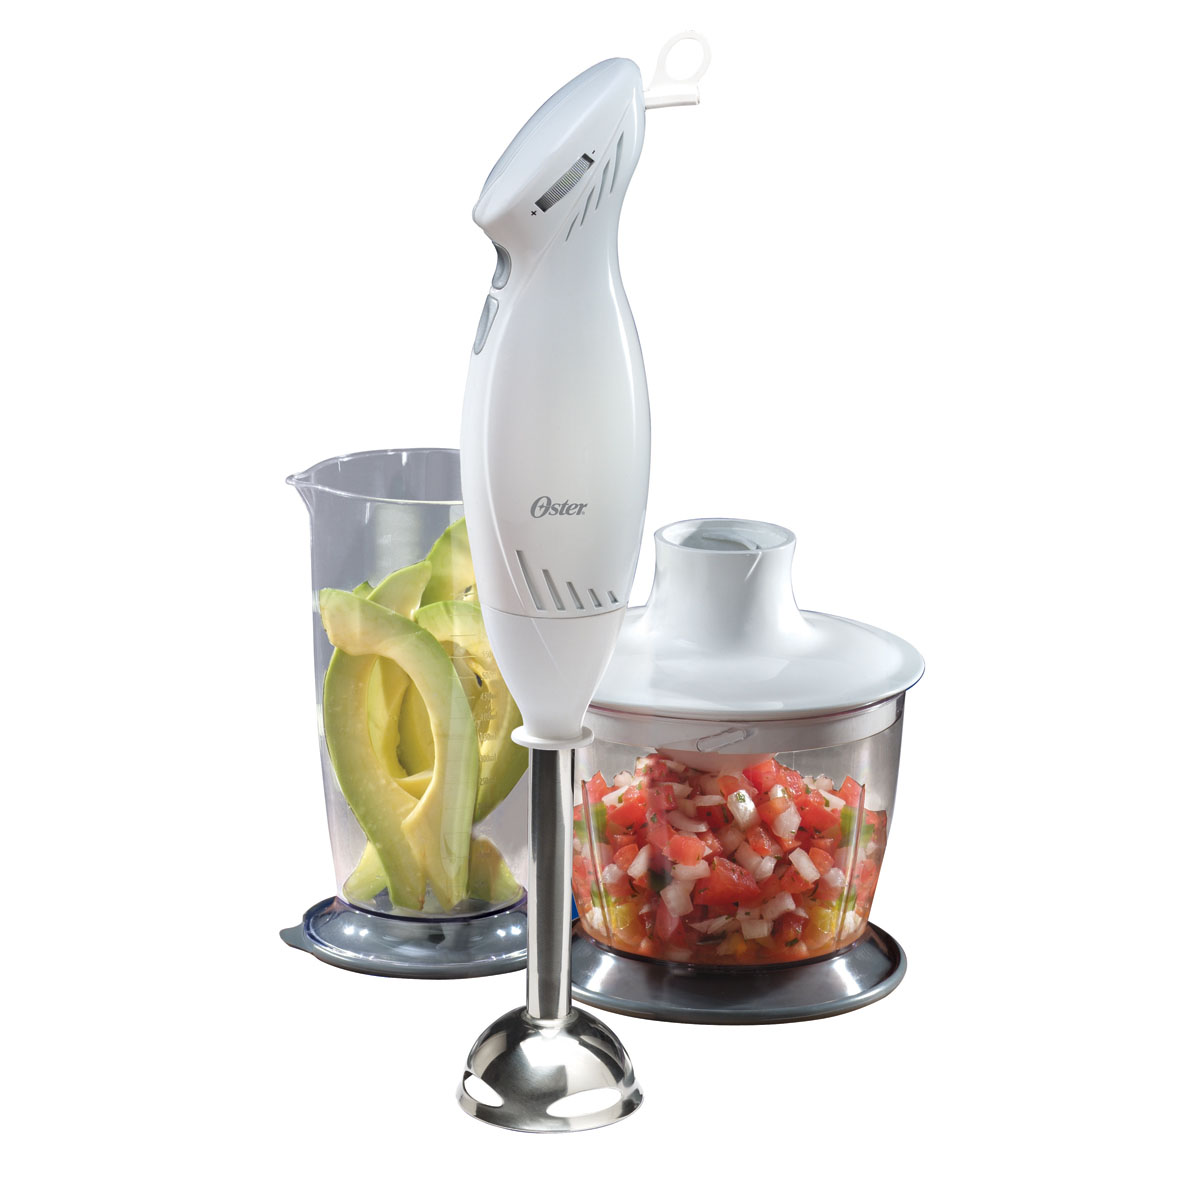 oster hand blender with cup chopper 2605 33 oster canada. Black Bedroom Furniture Sets. Home Design Ideas